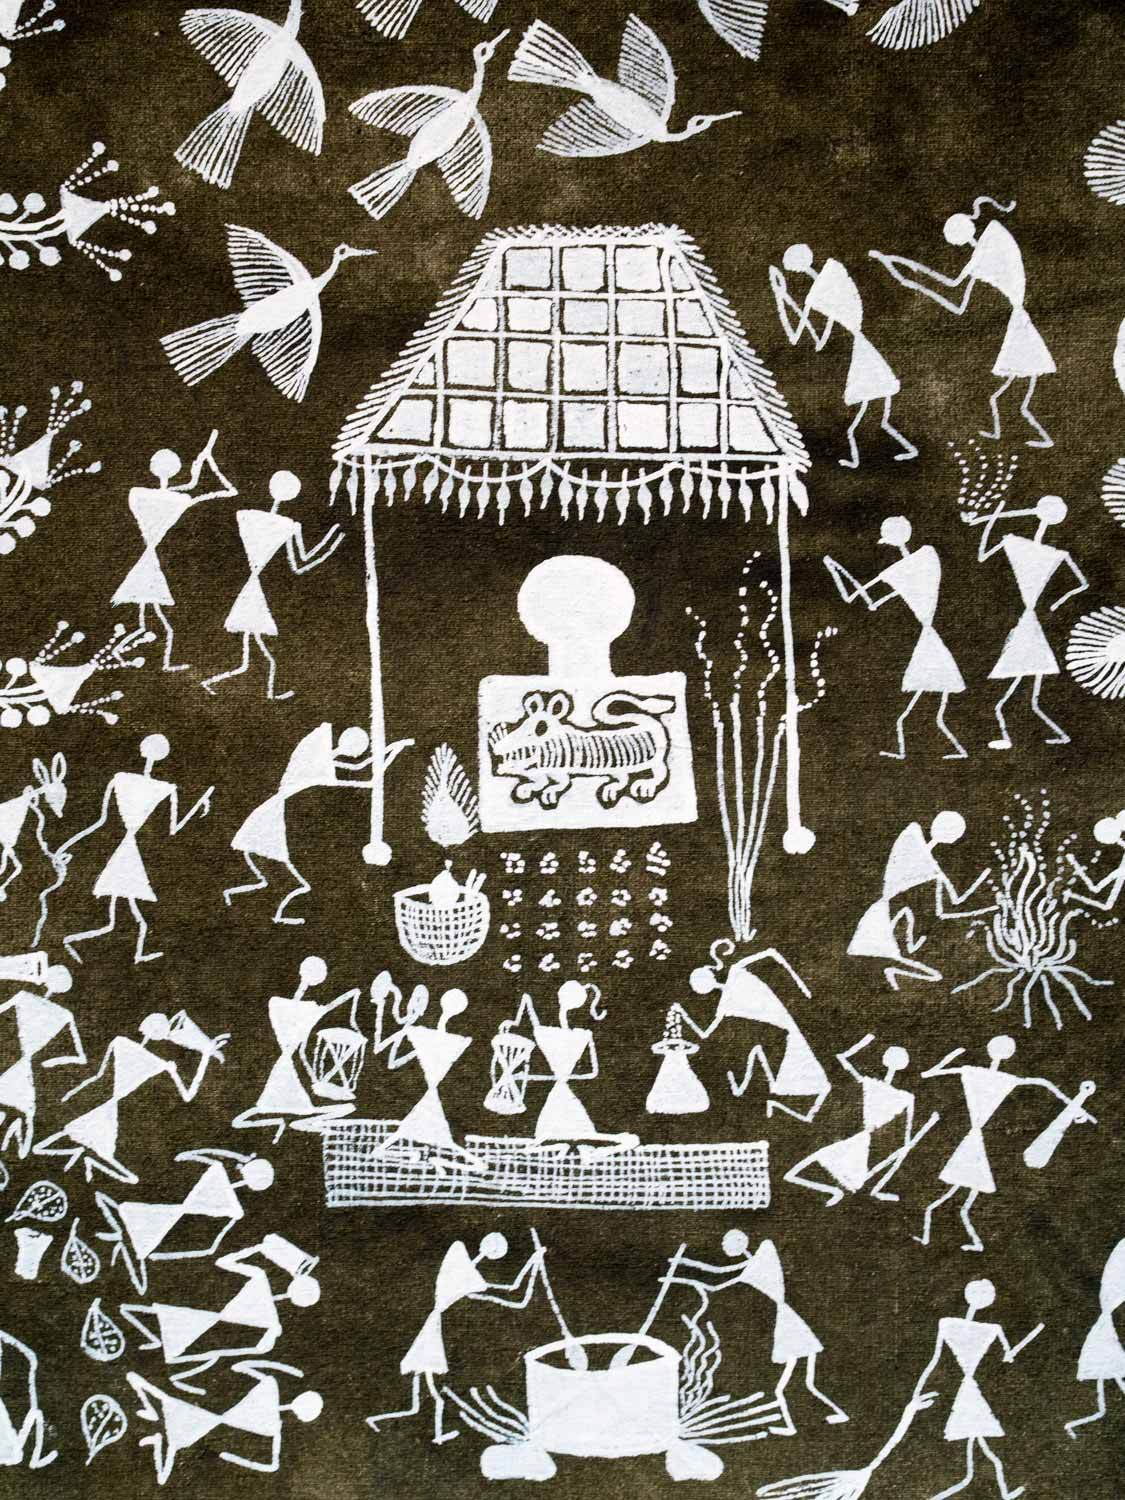 Dark Olive Warli Painting featuring a Tiger, detail